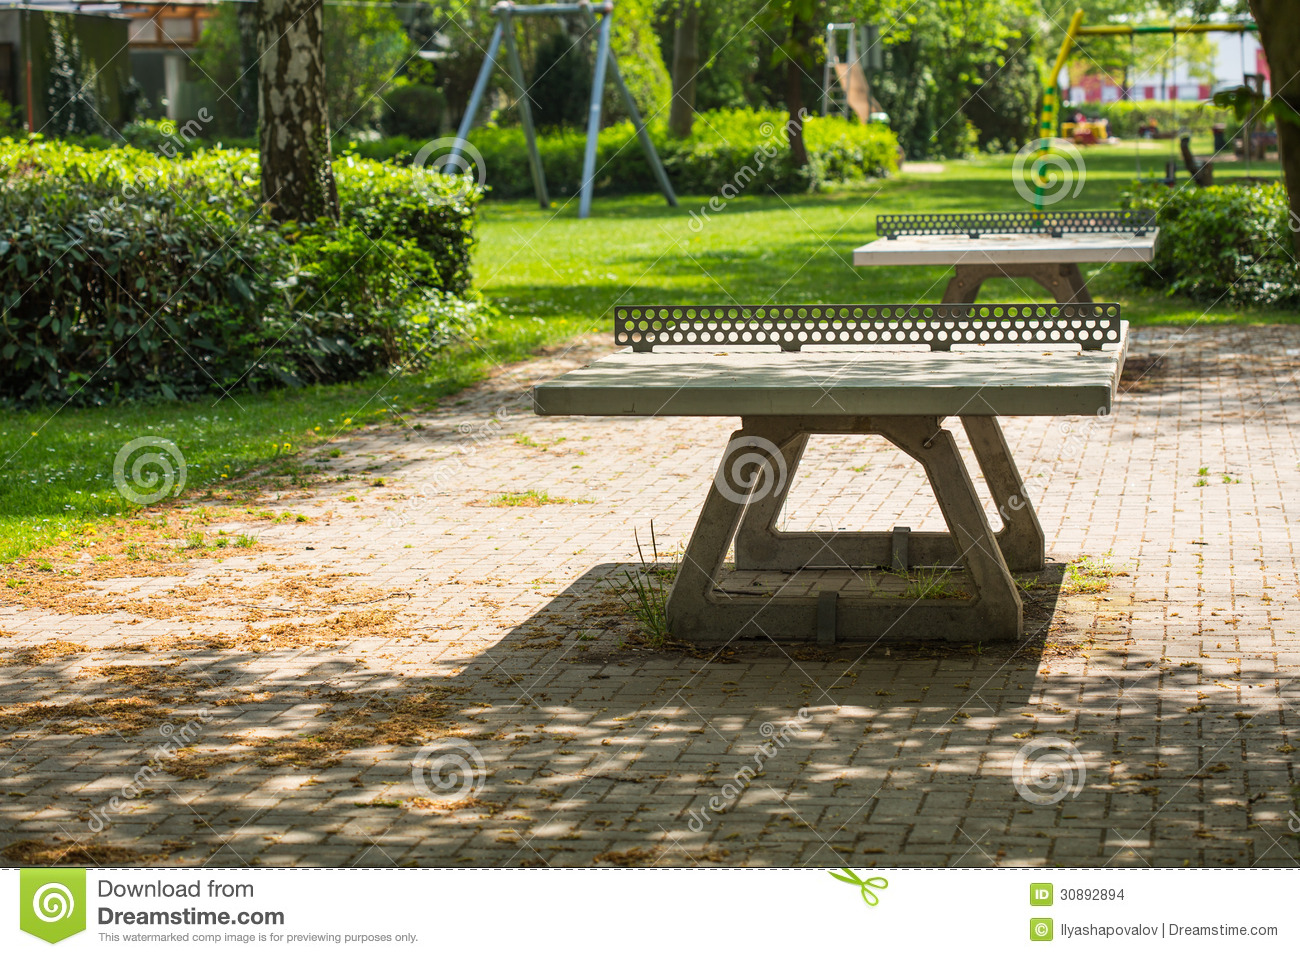 Ping Pong Tables In A Public Park Playground Stock Images - Image: 30892894